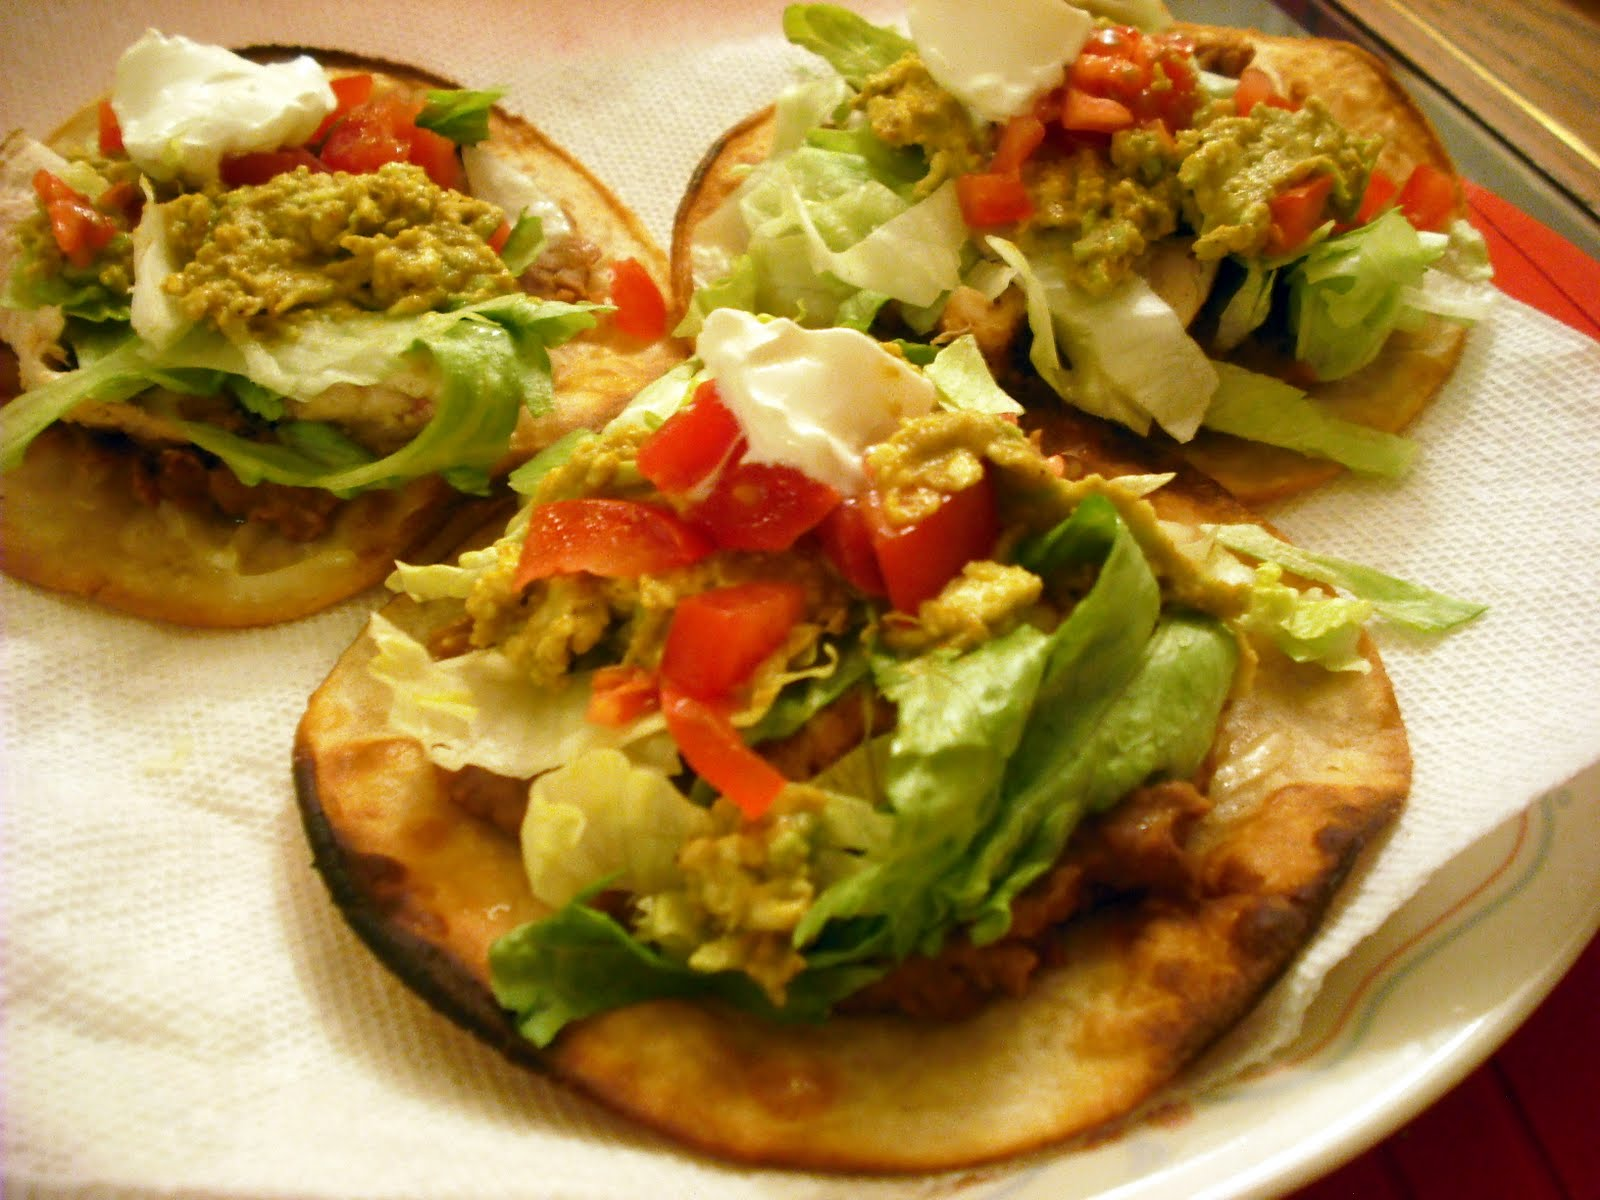 Food Judicata: Chicken Tostadas